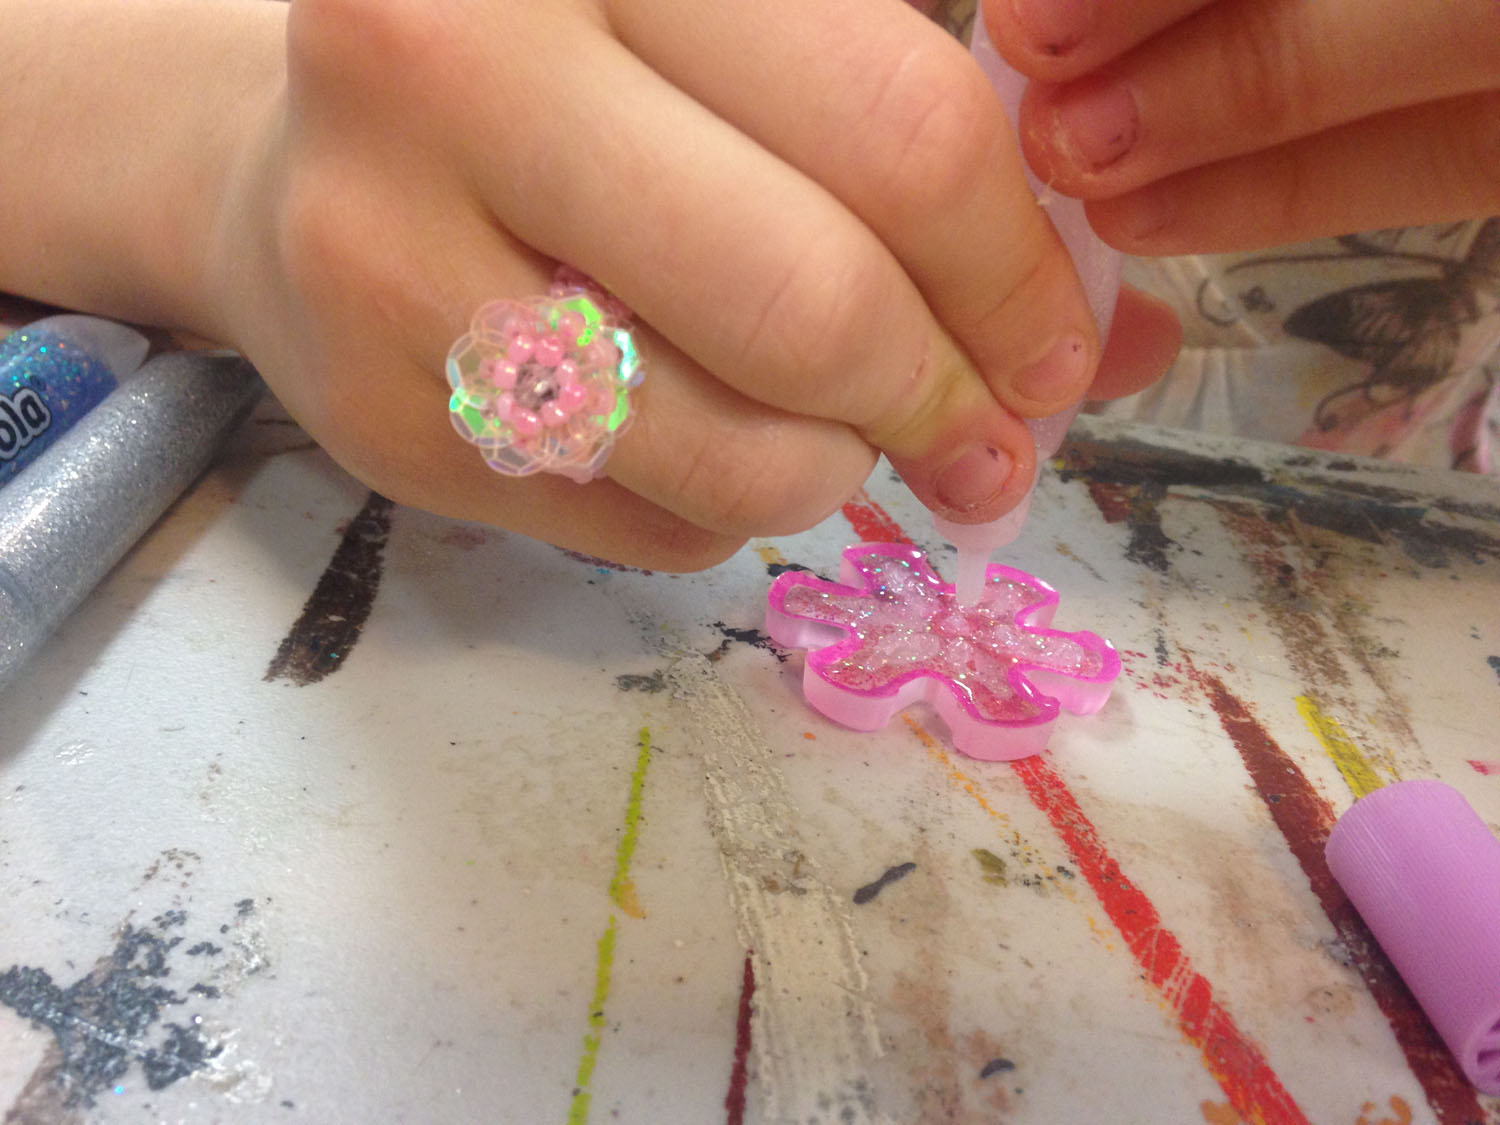 kids-art-parties-classes-and-camps-in-greensboro-nc-with-artist-tracey-j-marshallIMG_0555.jpg